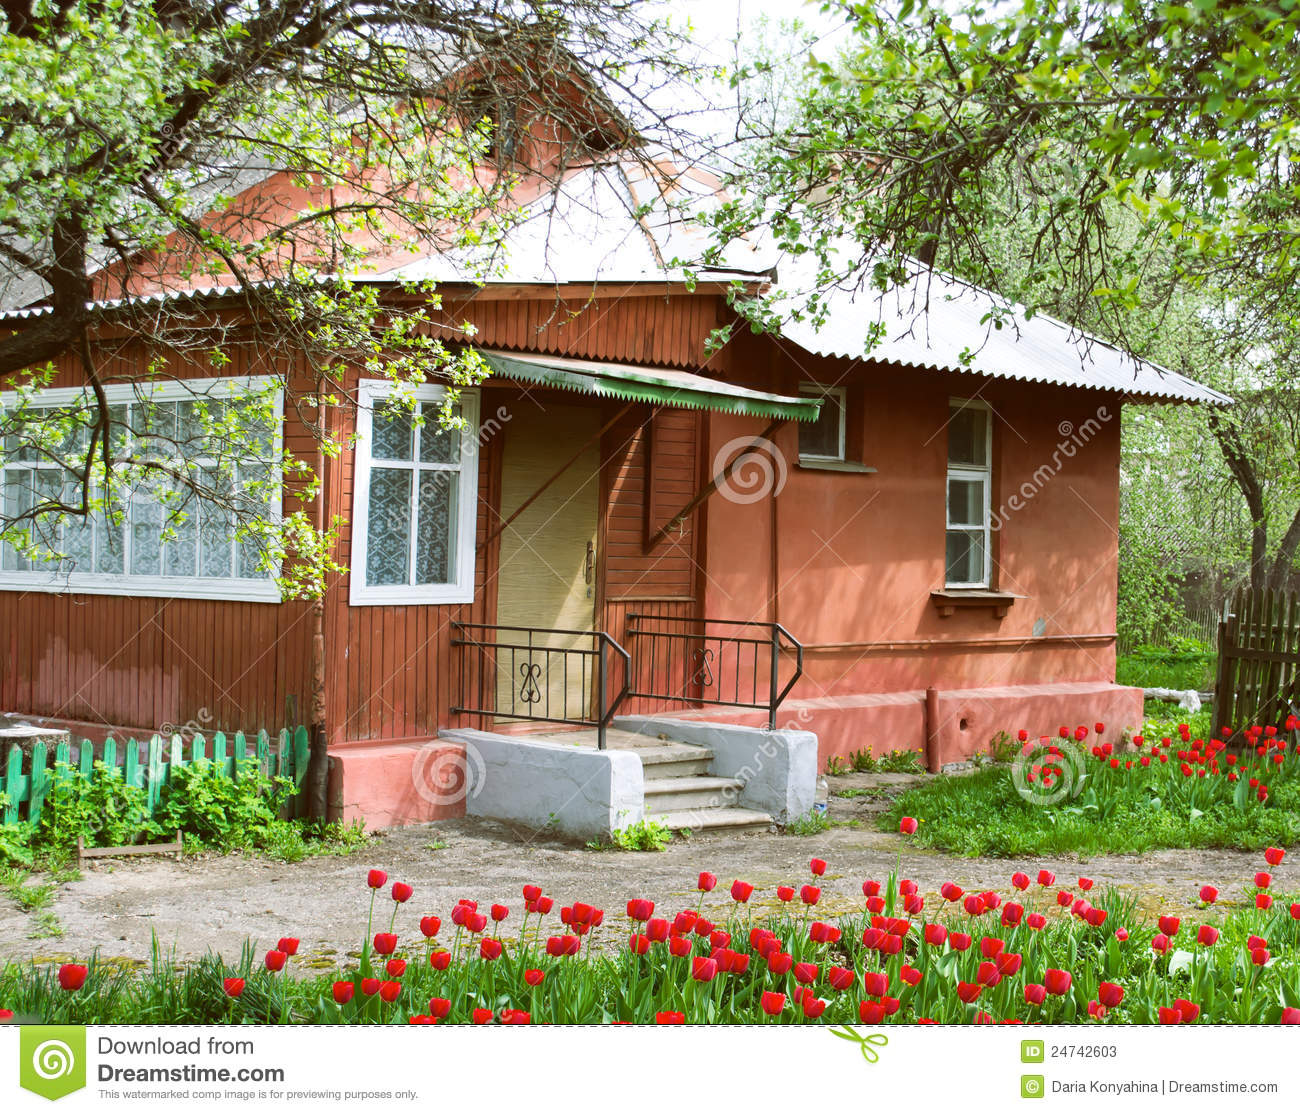 House and garden with tulips